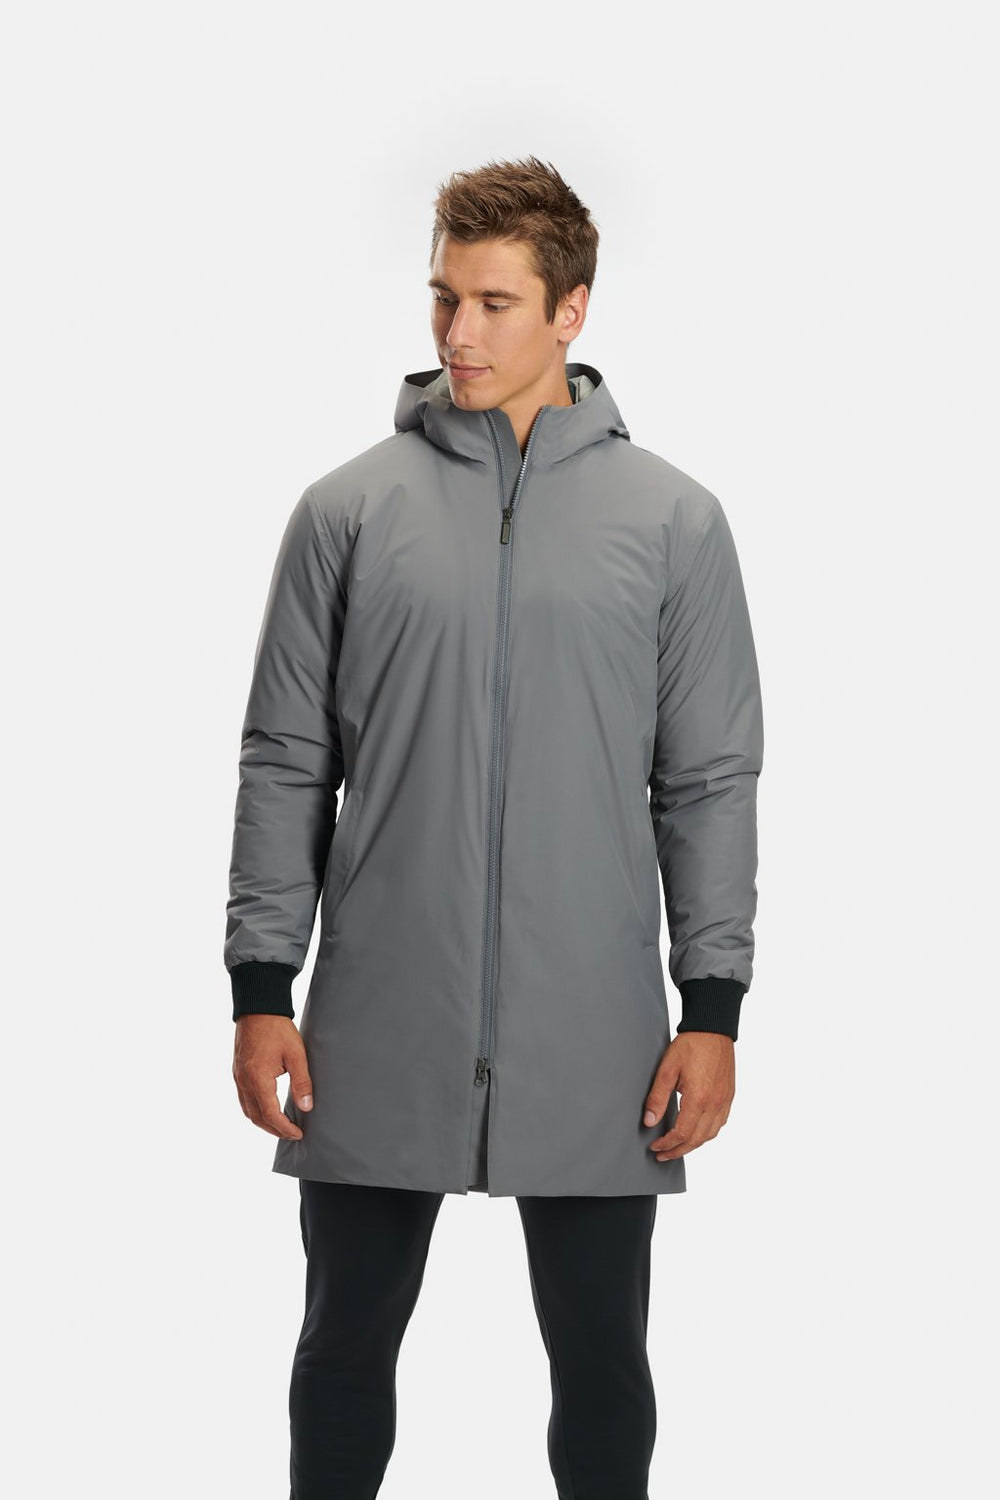 RYU Mens Sideline Parka in Cement